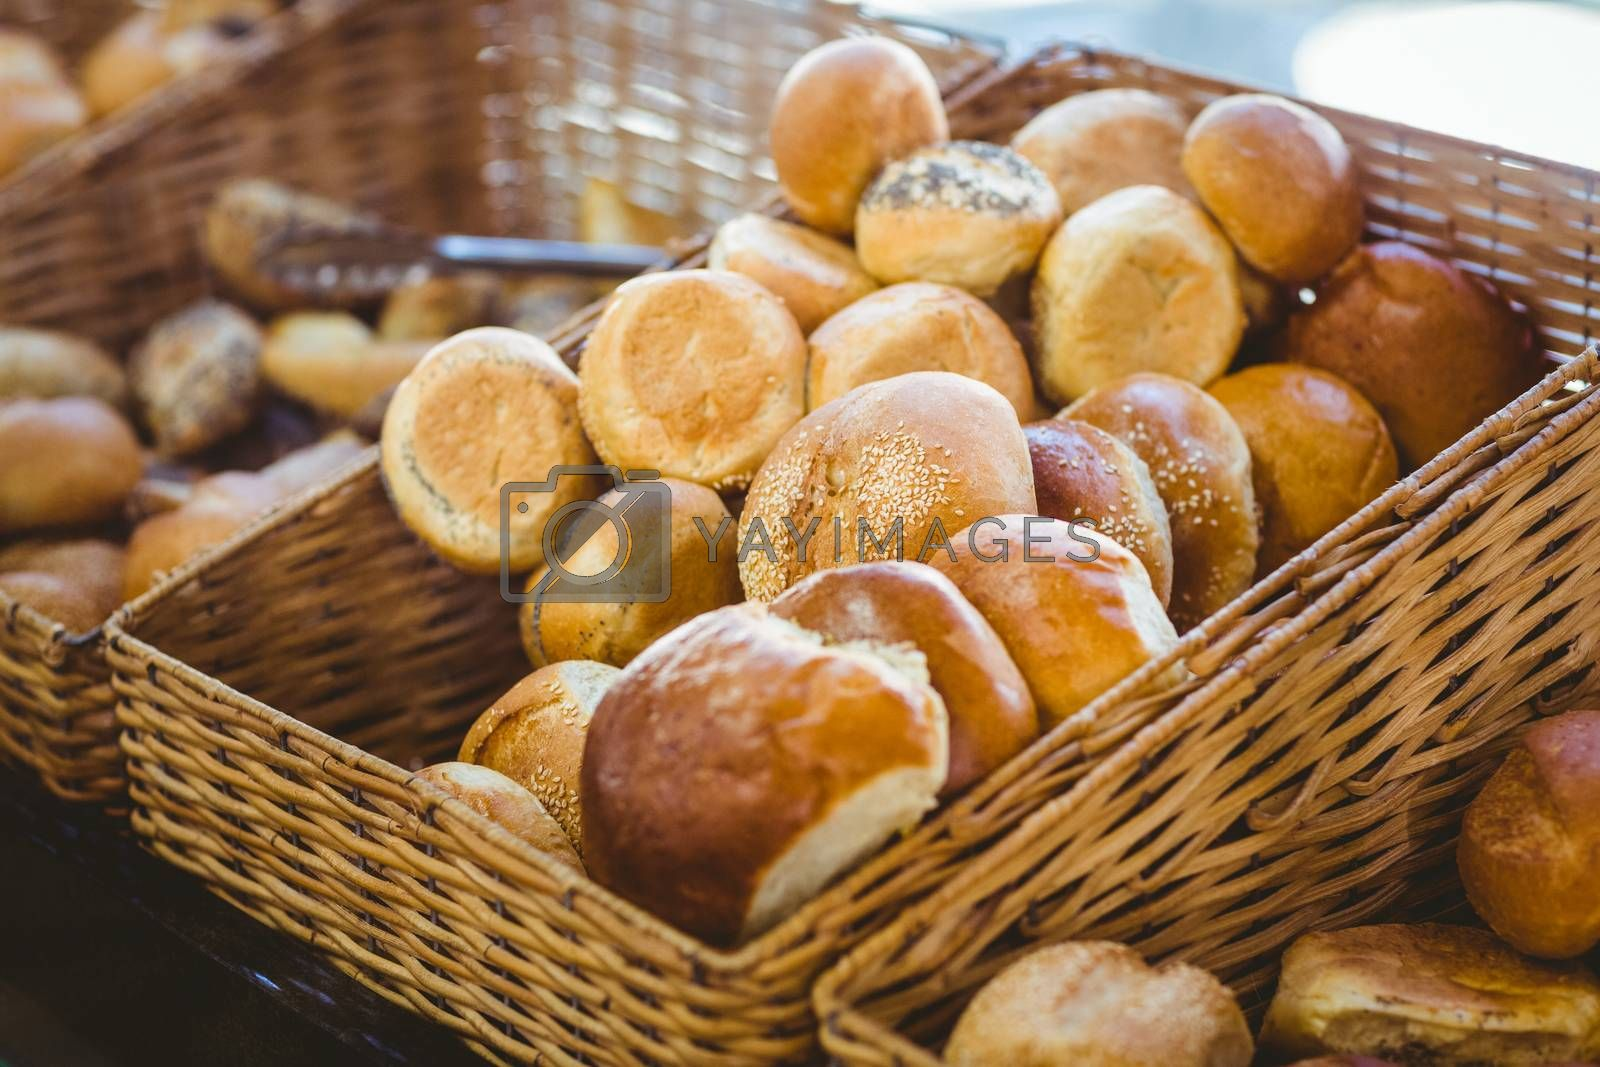 Royalty free image of Basket filling with delicious bread by Wavebreakmedia